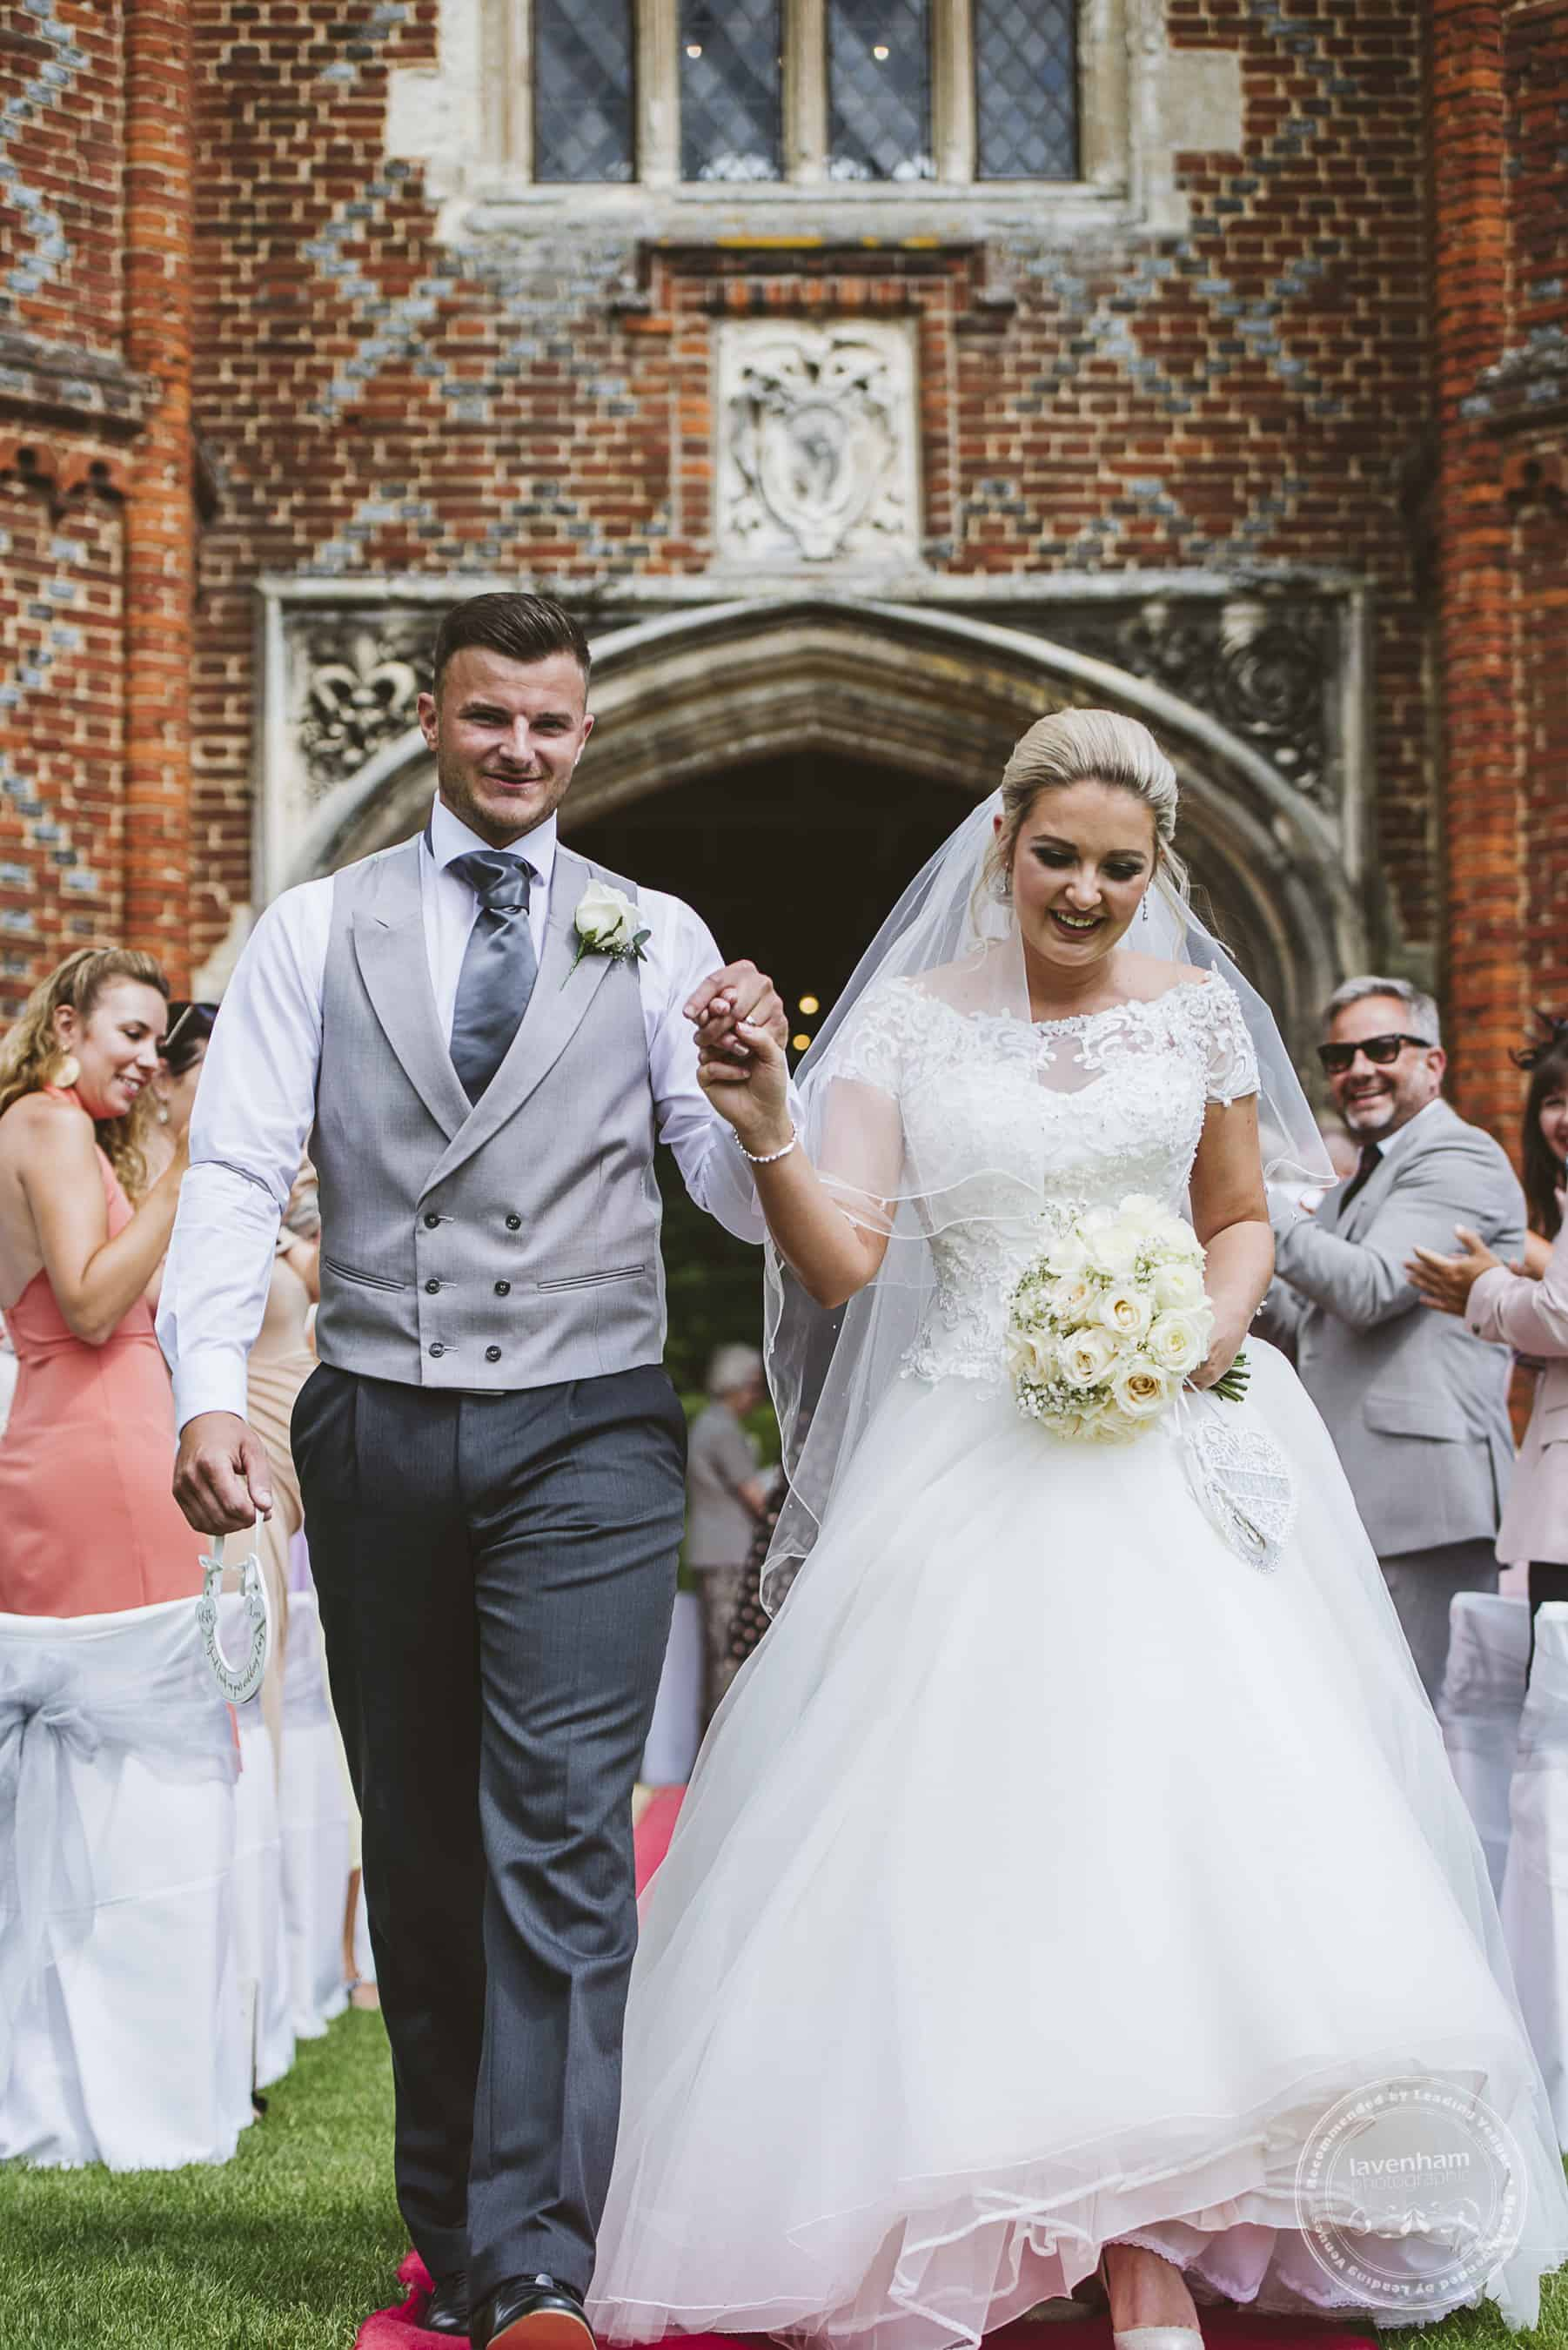 030618 Leez Priory Wedding Photography Lavenham Photographic 046